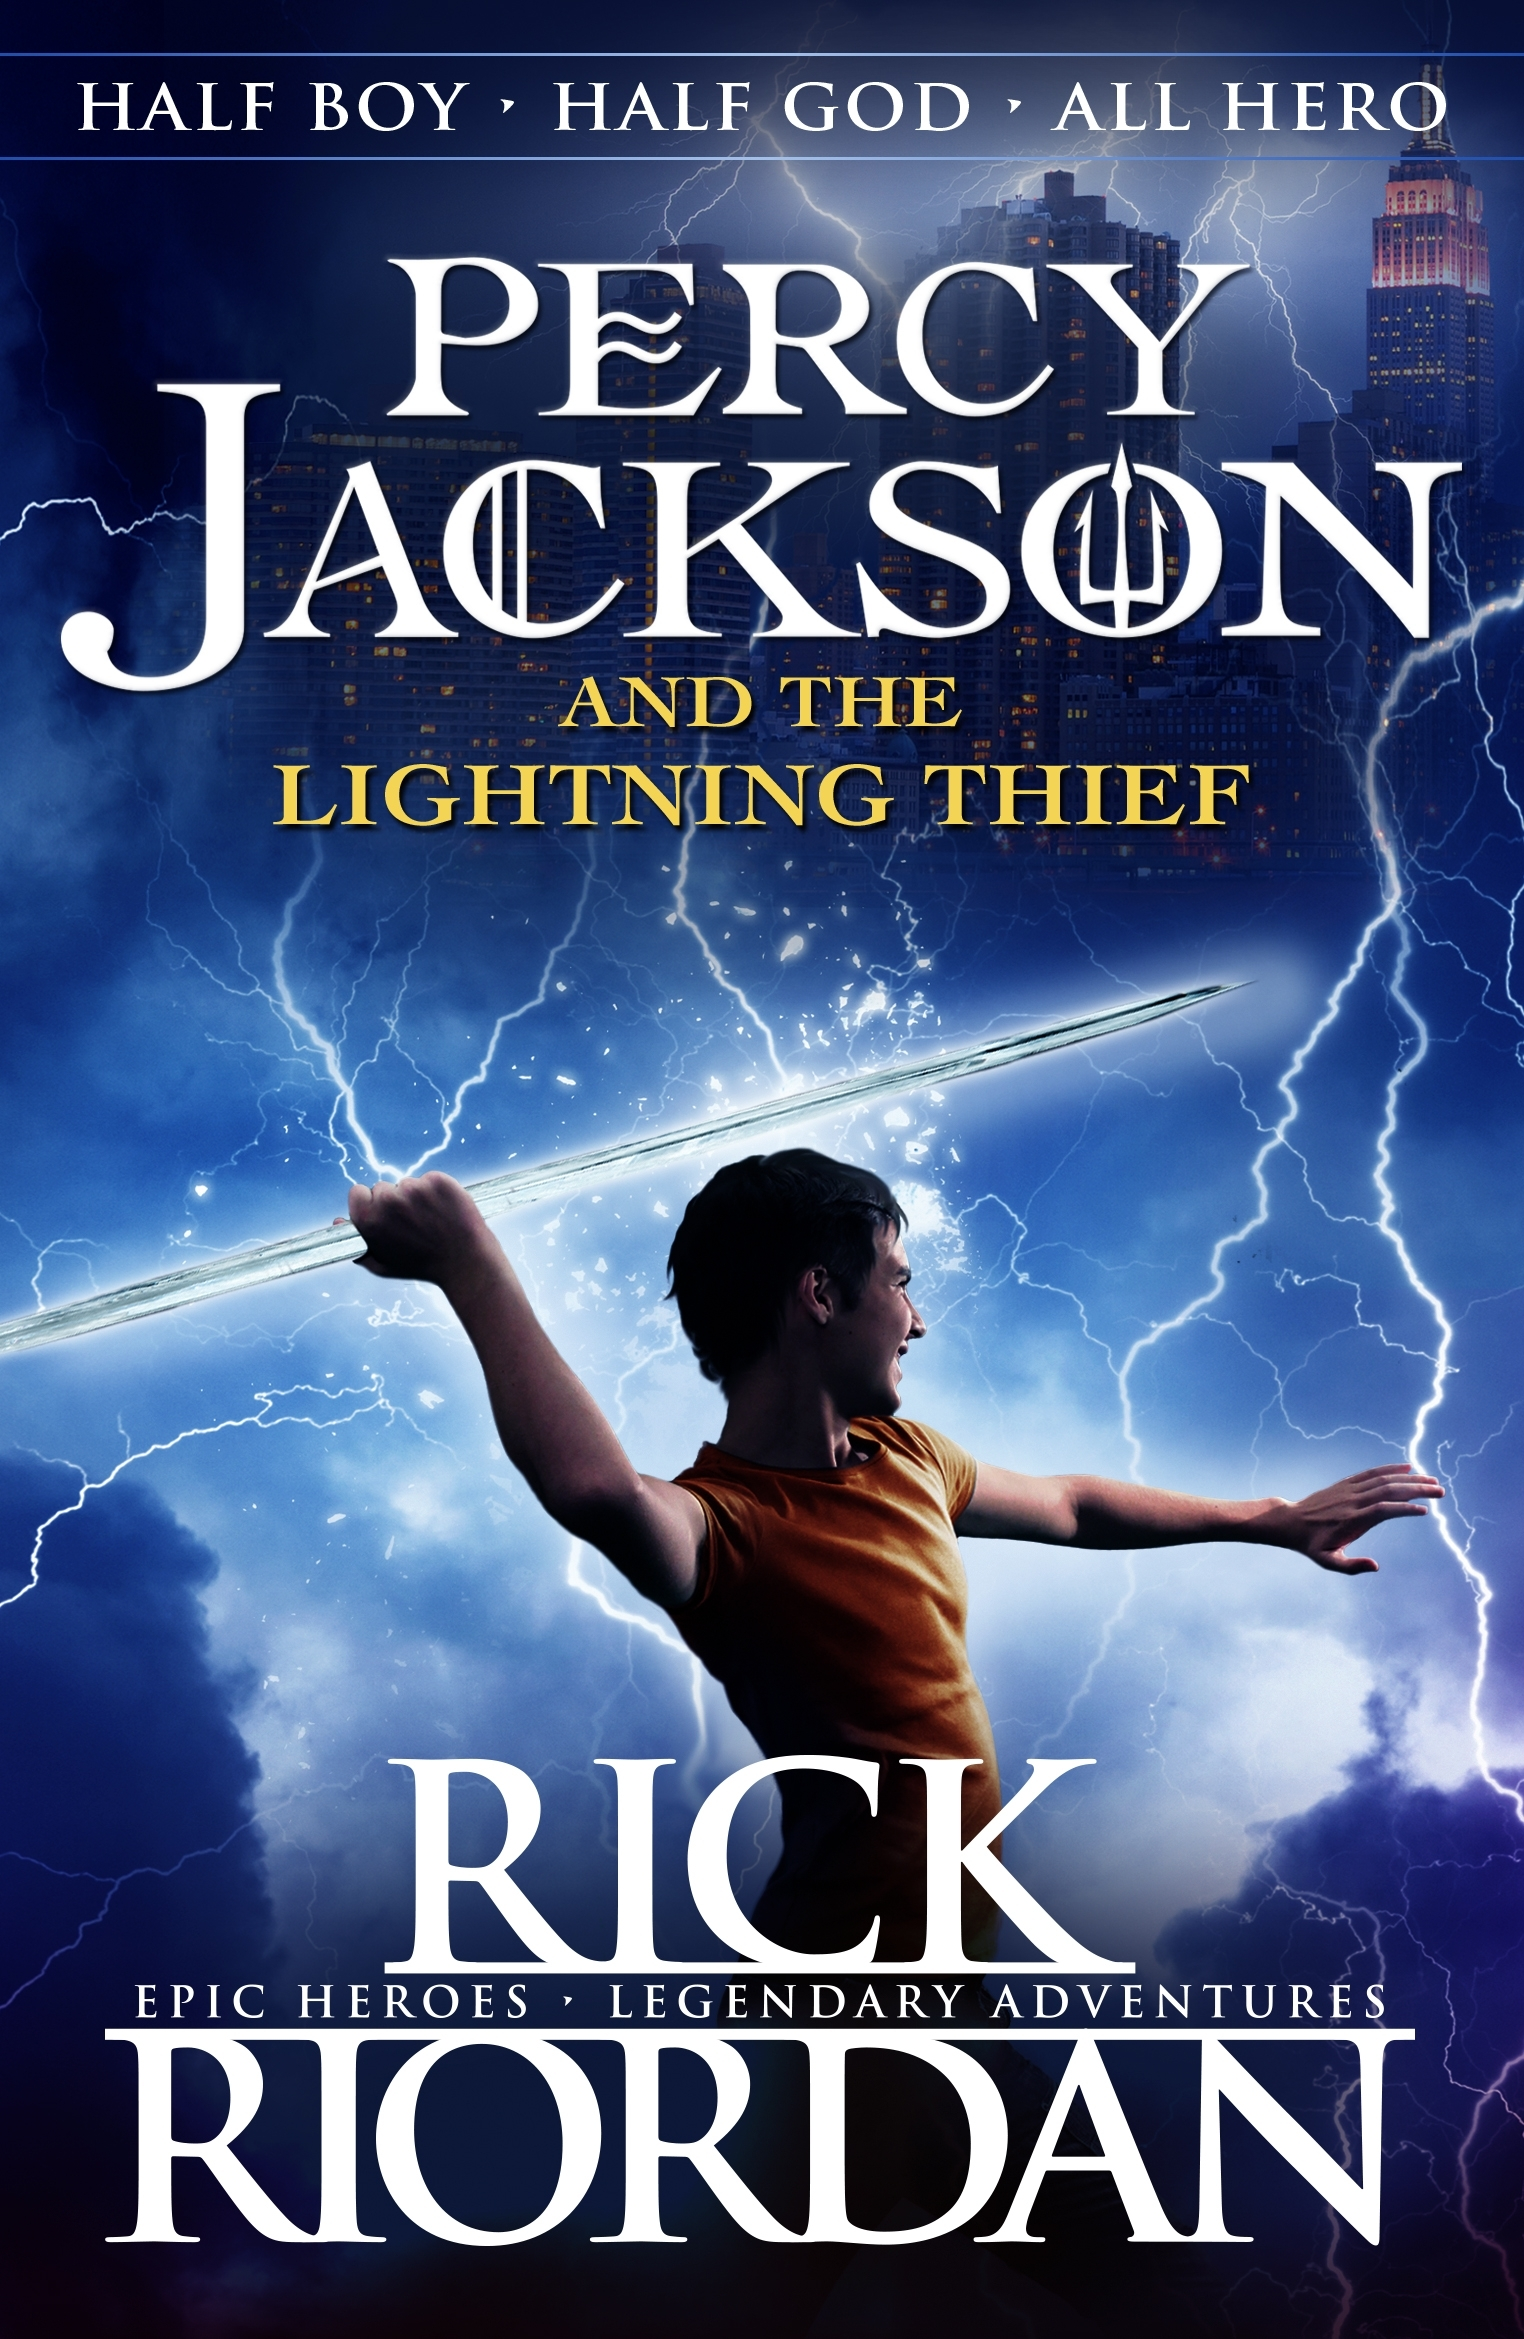 Percy Jackson And The Lightning Thief Book 1 By Rick Riordan  sc 1 st  Lilianduval & Percy Jackson The Lighting Thief - Lilianduval azcodes.com